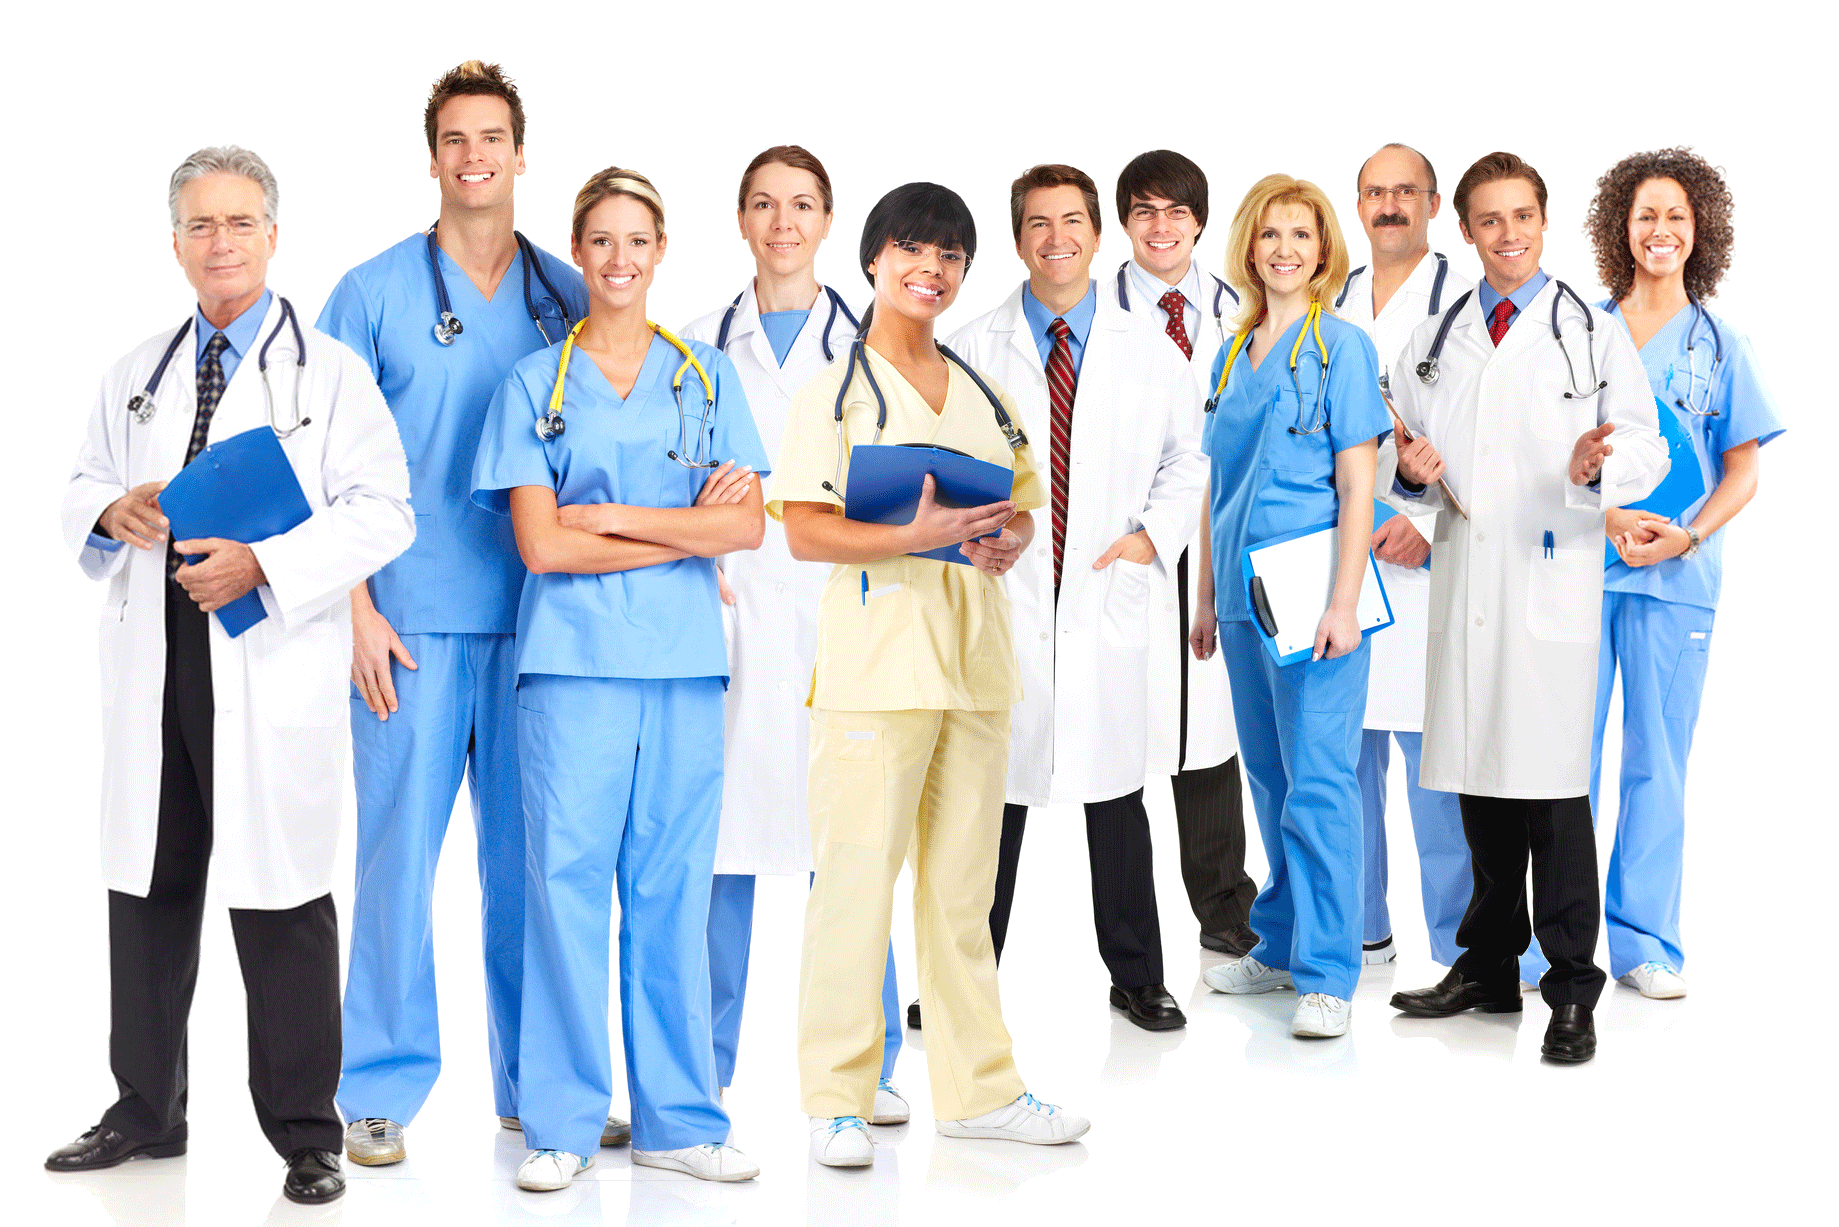 a comparison of professions of doctors and nurses in the medical field The medical model versus the nursing model until recently i found this distinction annoying and reductive, diminishing the individual differences each of us have there is an actual definition for the medical model.